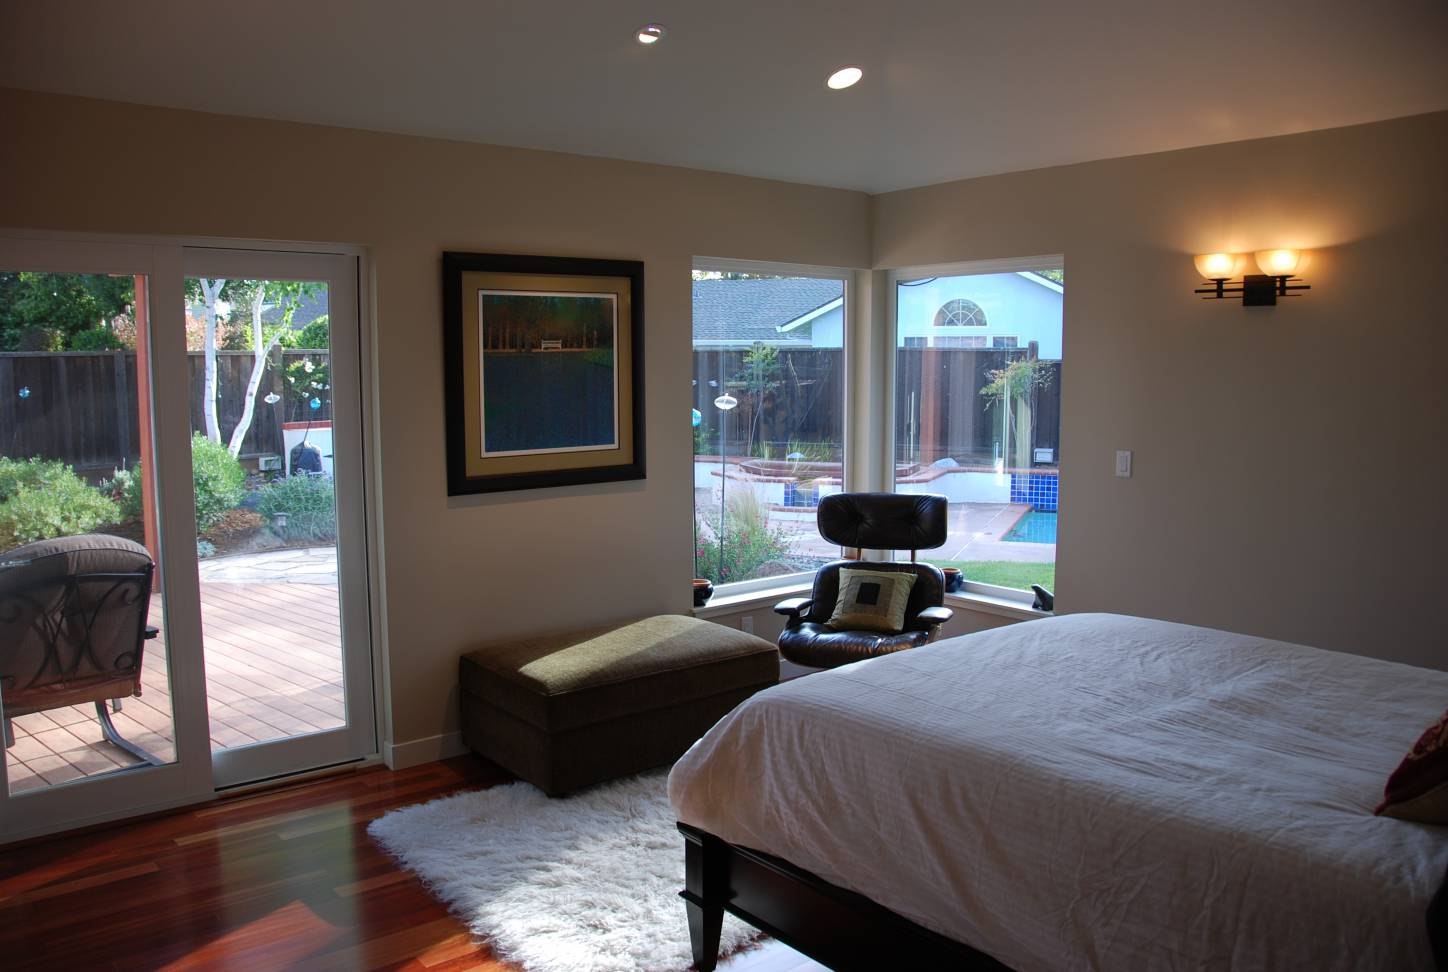 Master bedroom with backyard view and access, interior work, architect design, Mountain View